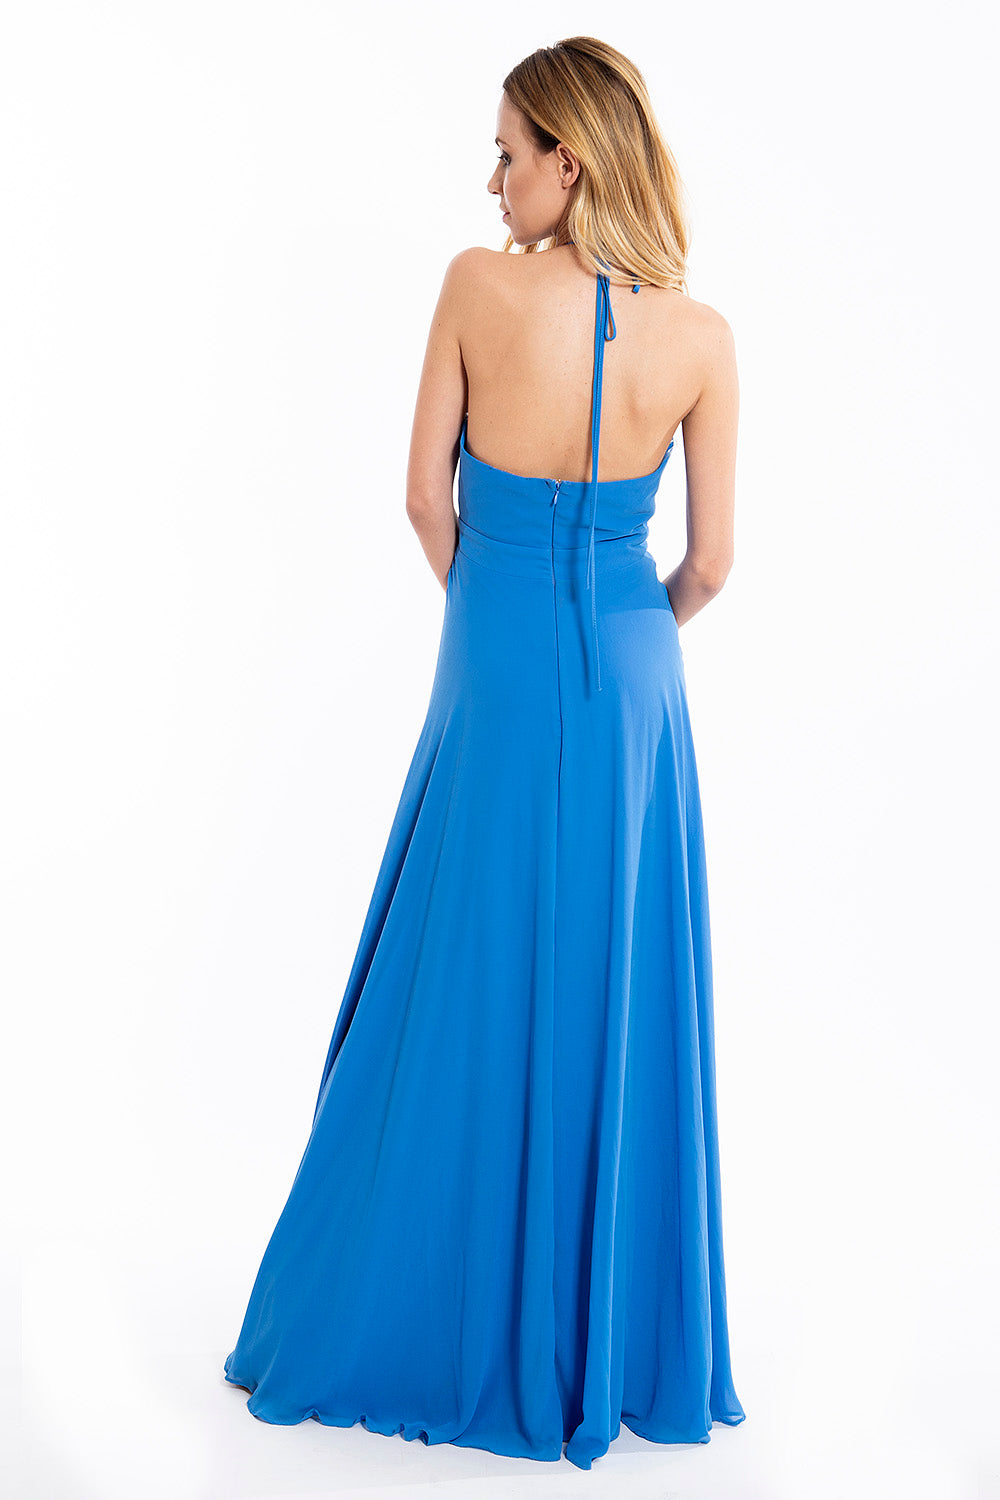 FreeStyle floor length open back dress